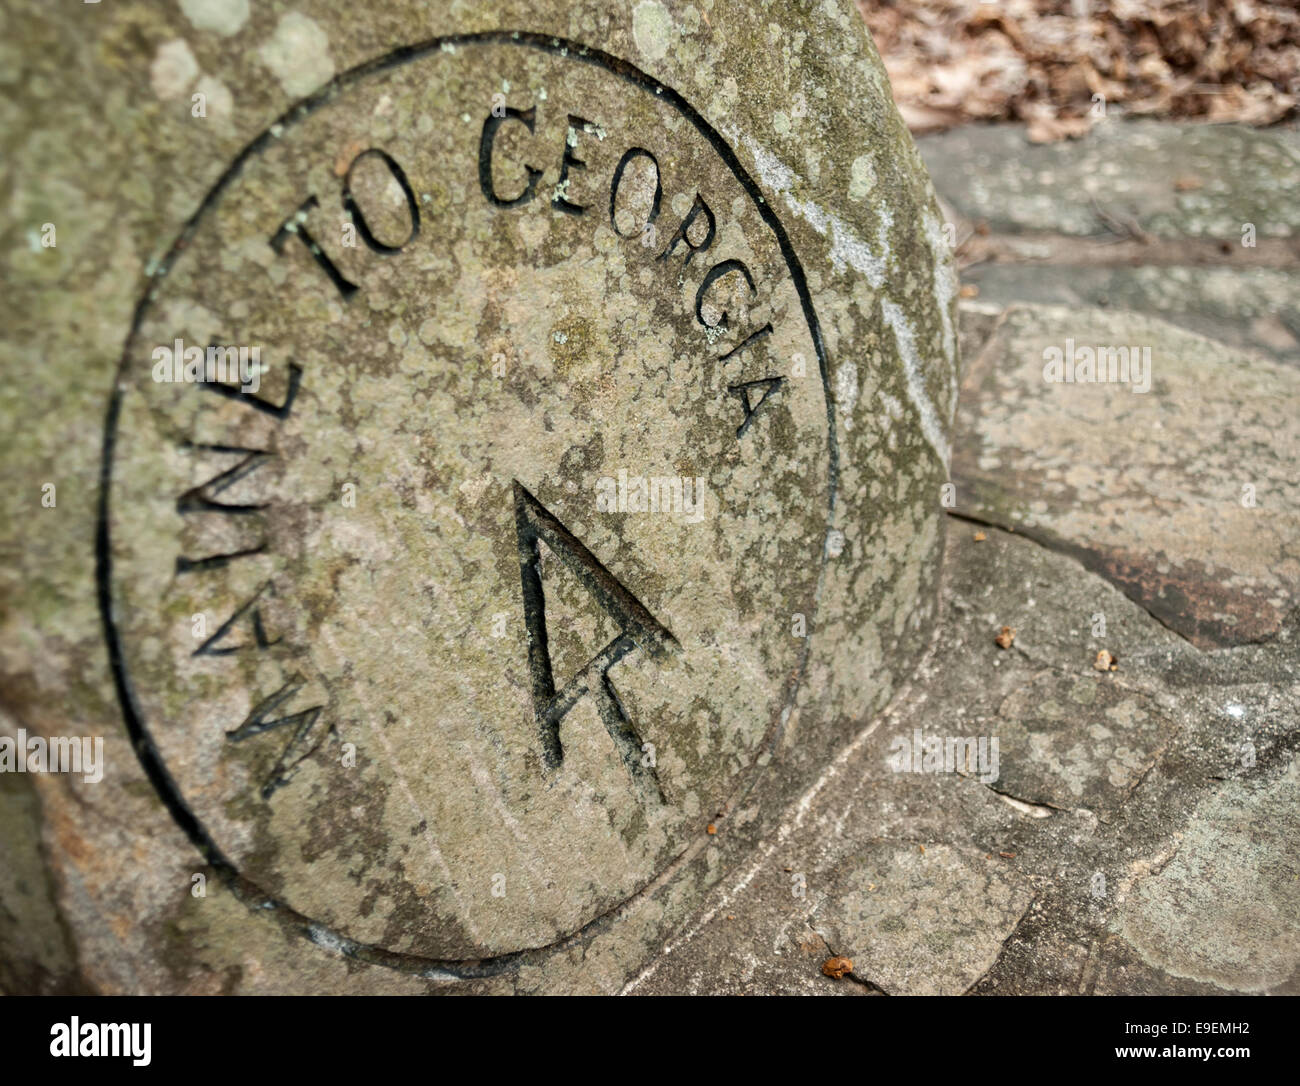 This stone marker indicates the beginning of the AT approach trail from Amicacola State Park to Springer Mountain - Stock Image